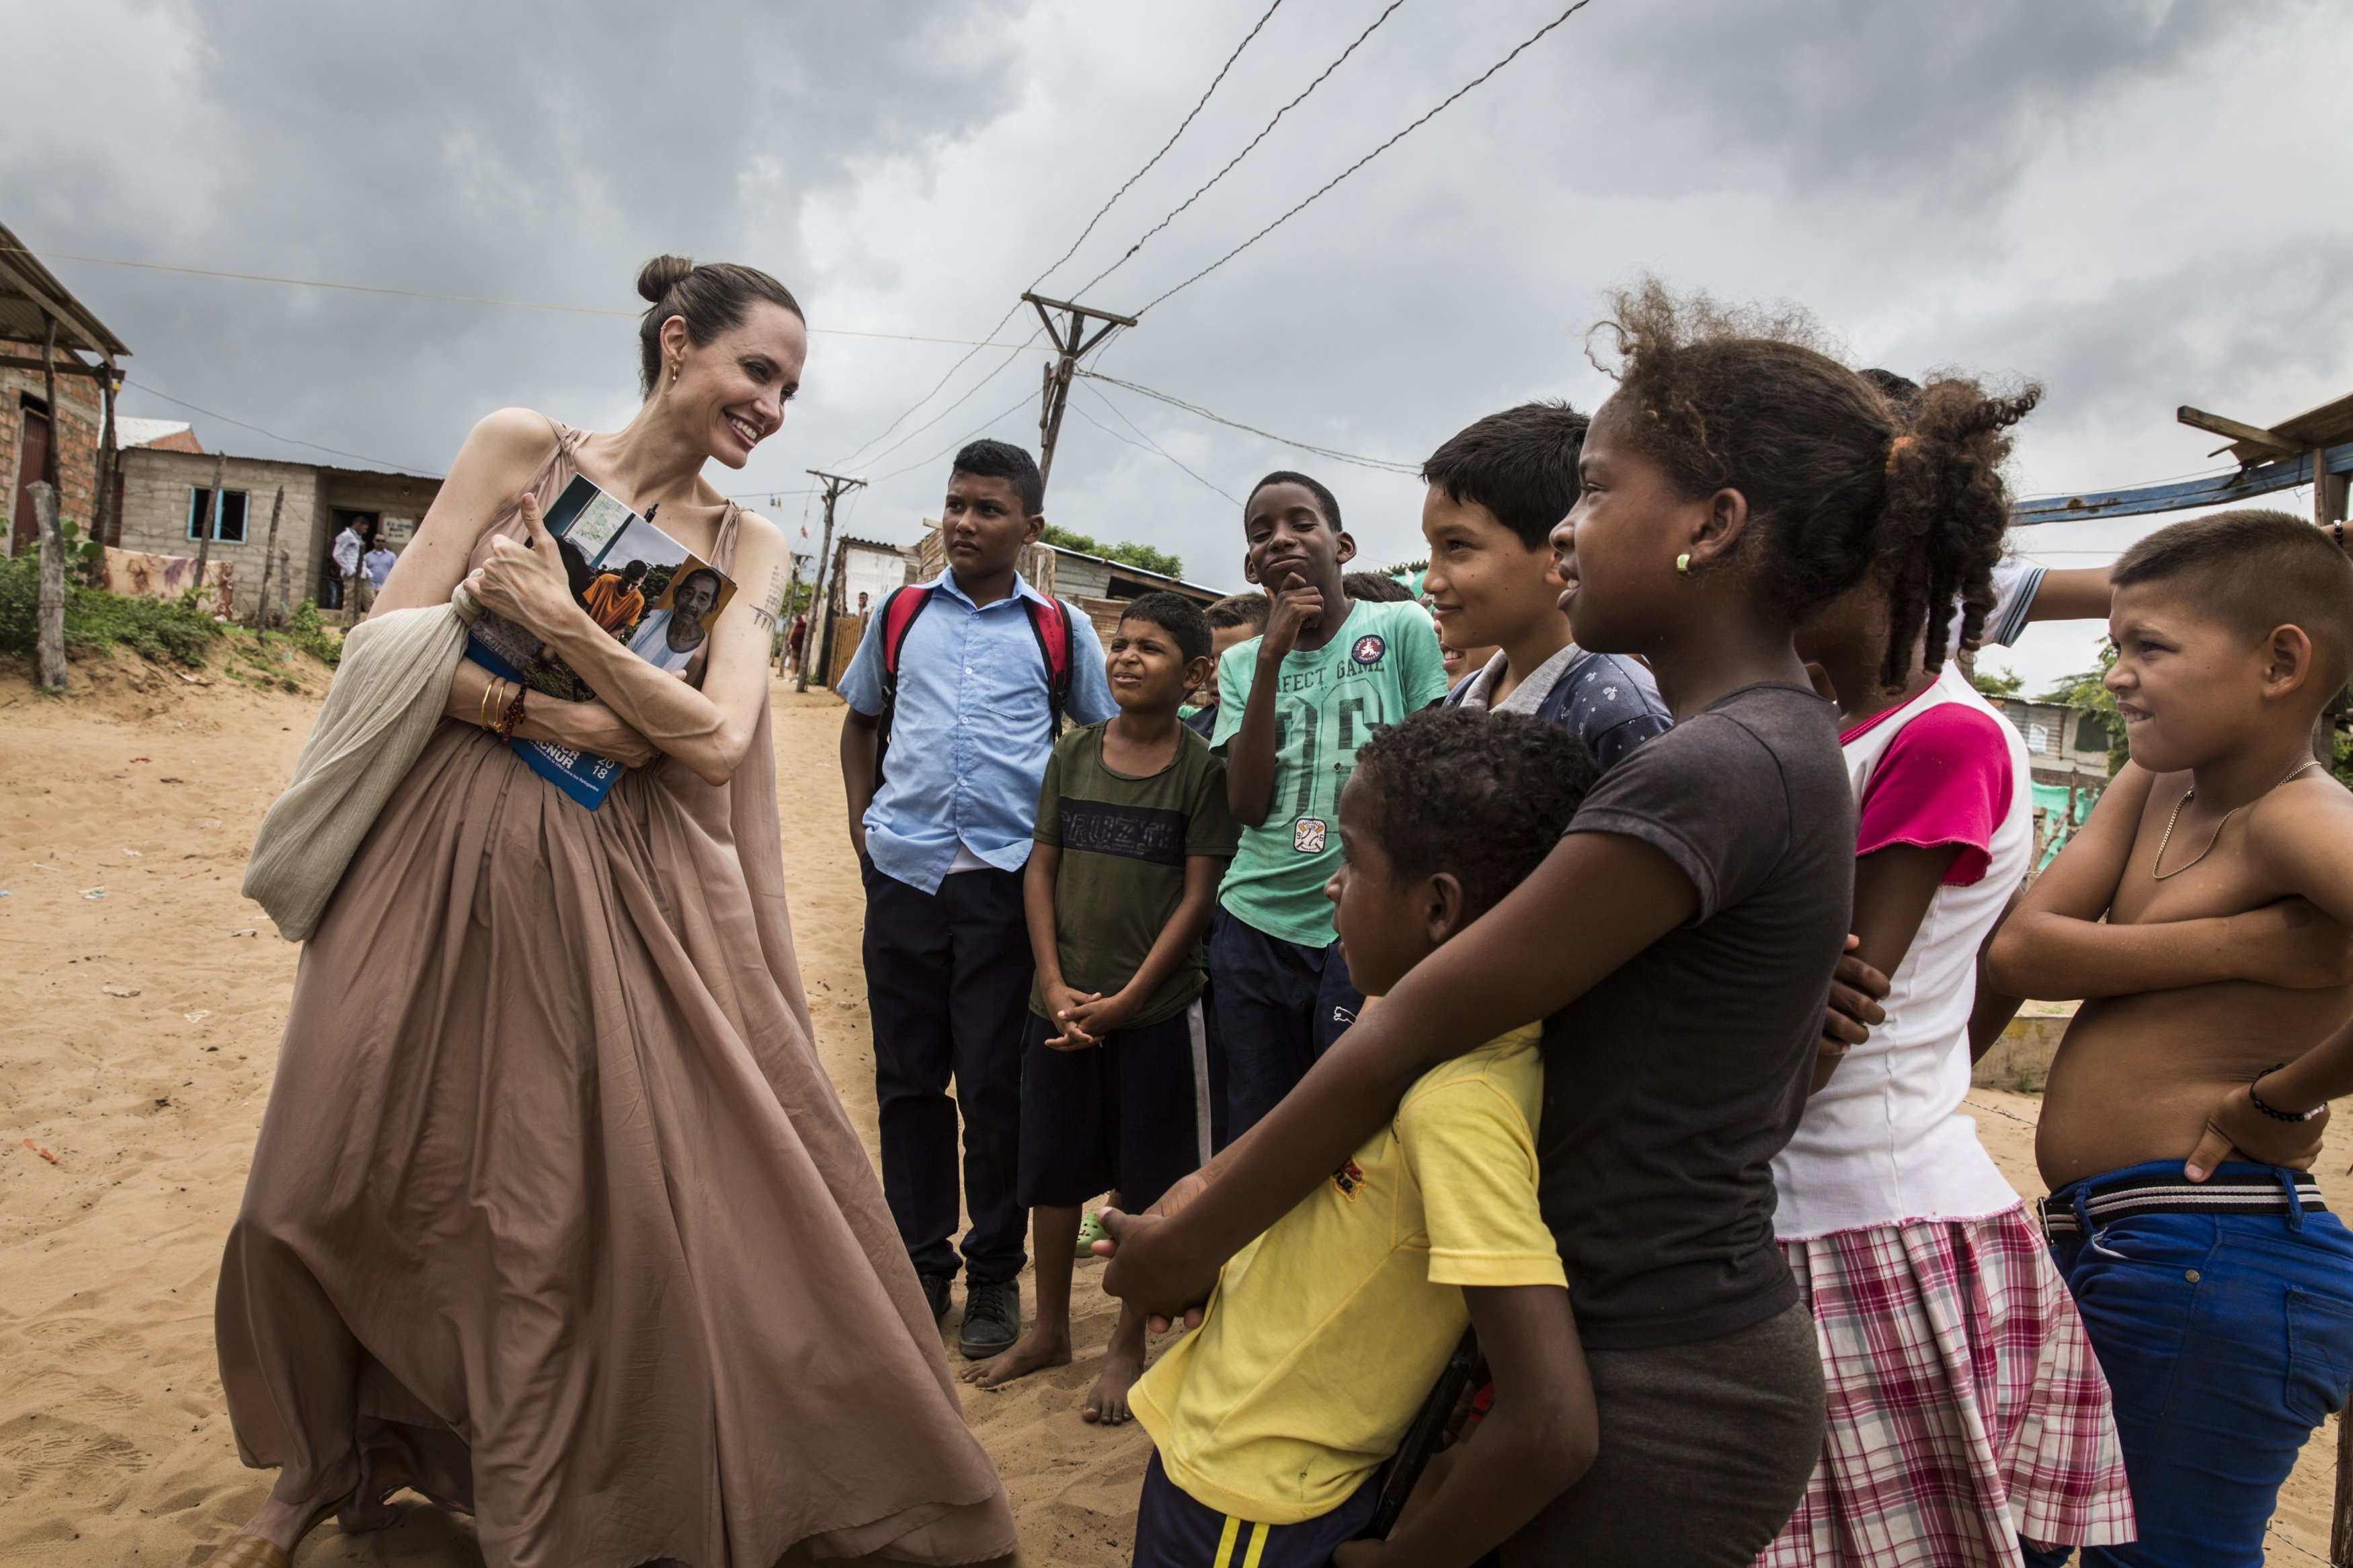 Image Source: Getty Images/Angelina in one of her mission in helping children